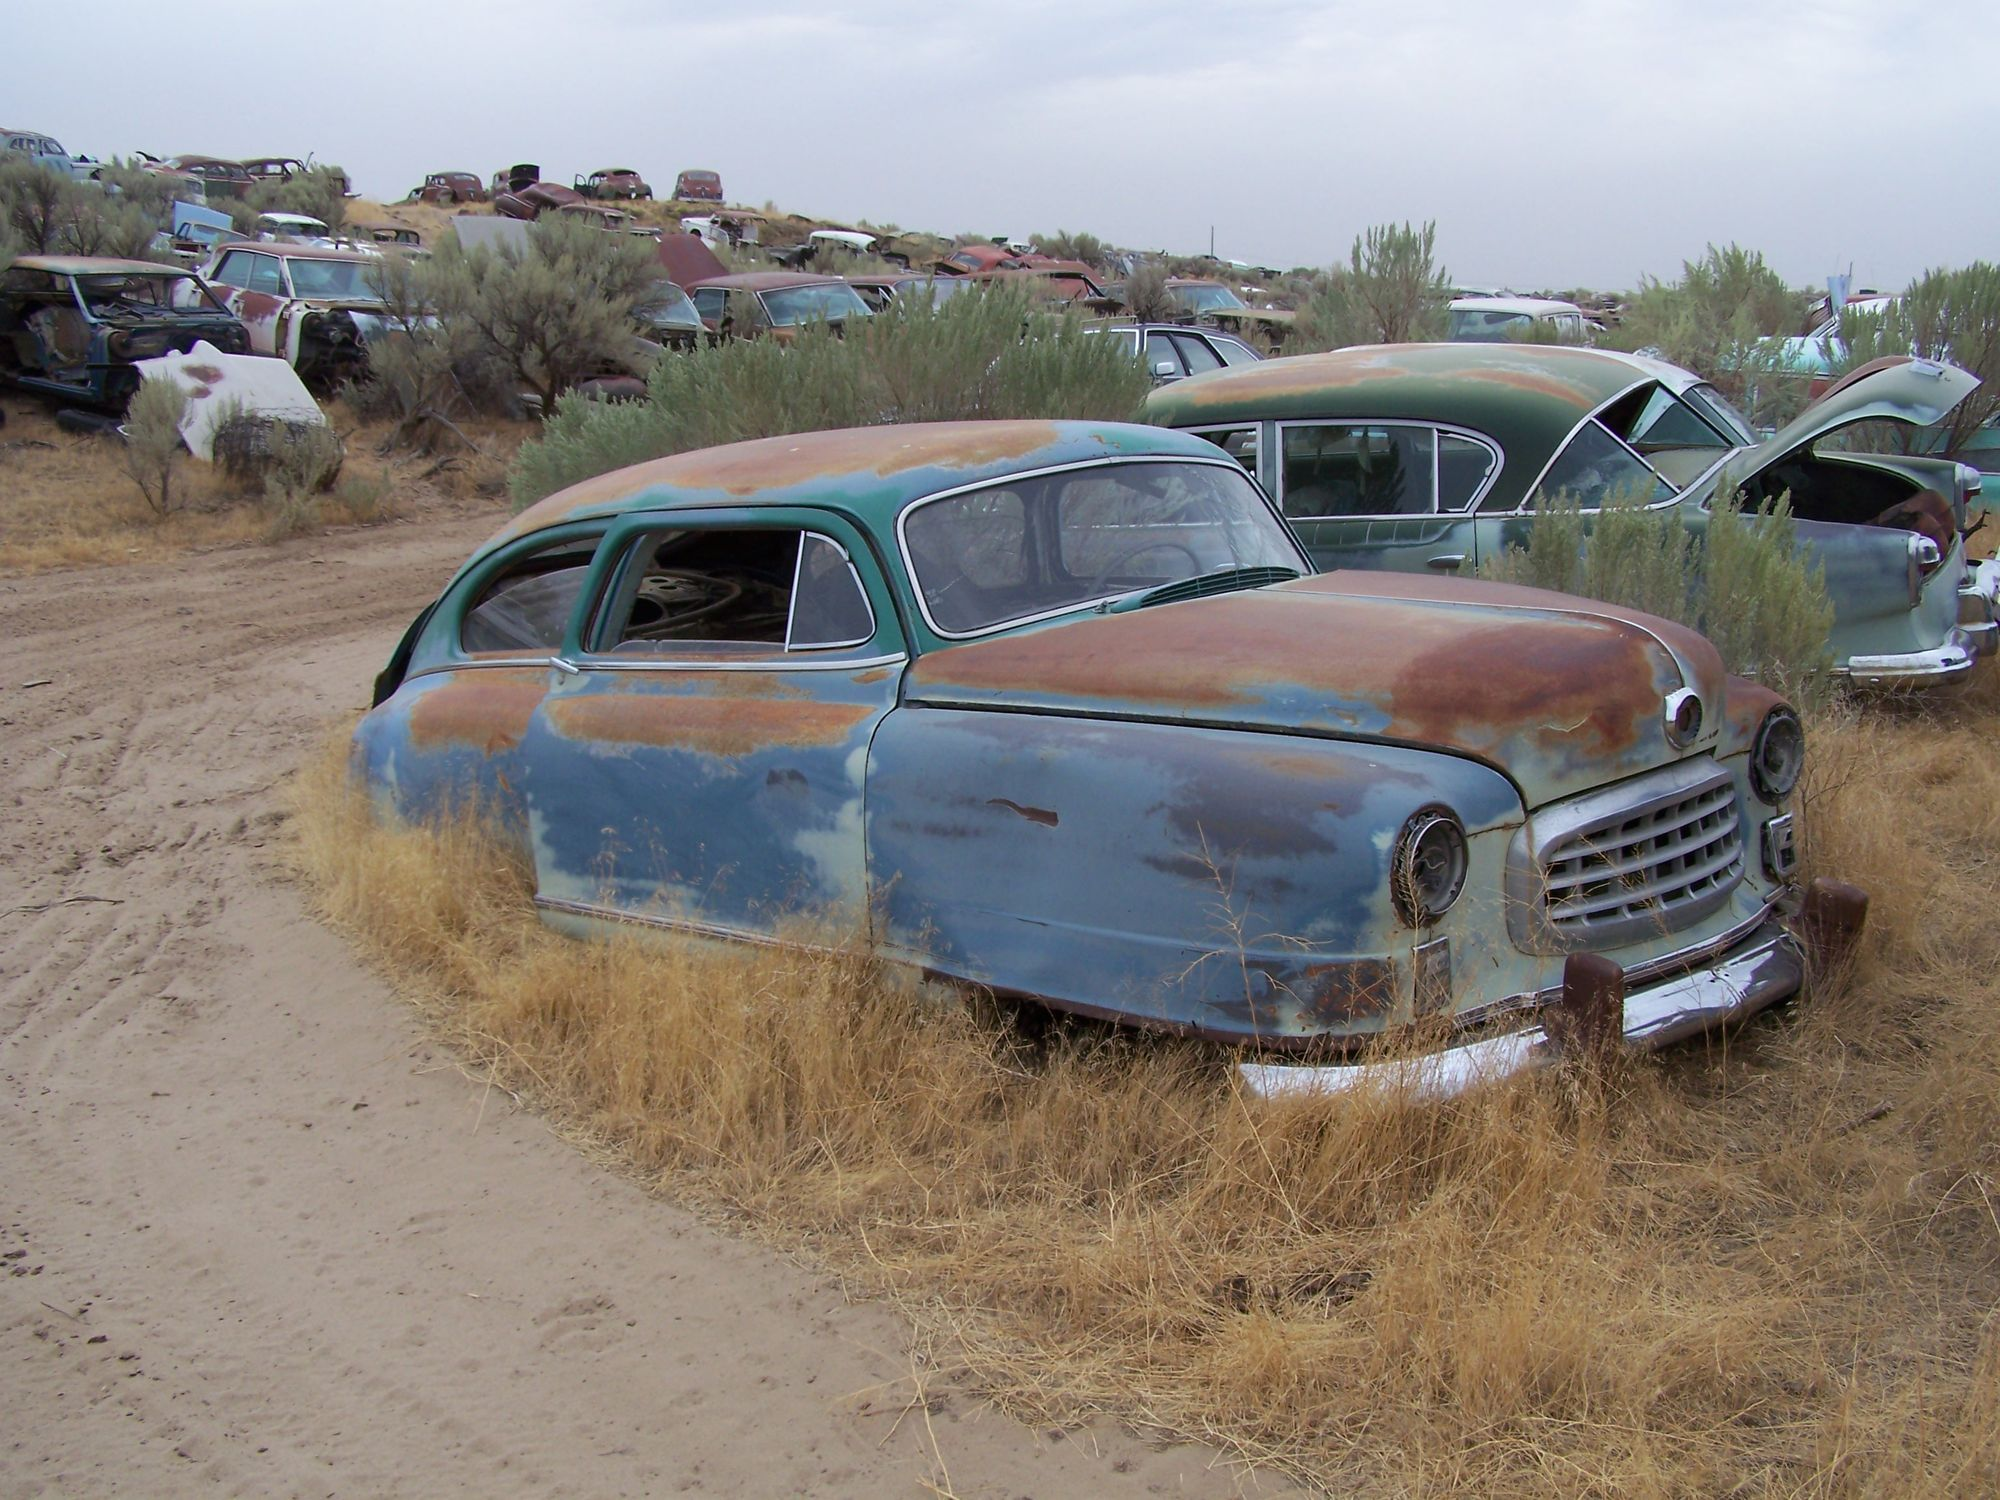 Junkyard tours 8,000 cars revisited Junkyard cars